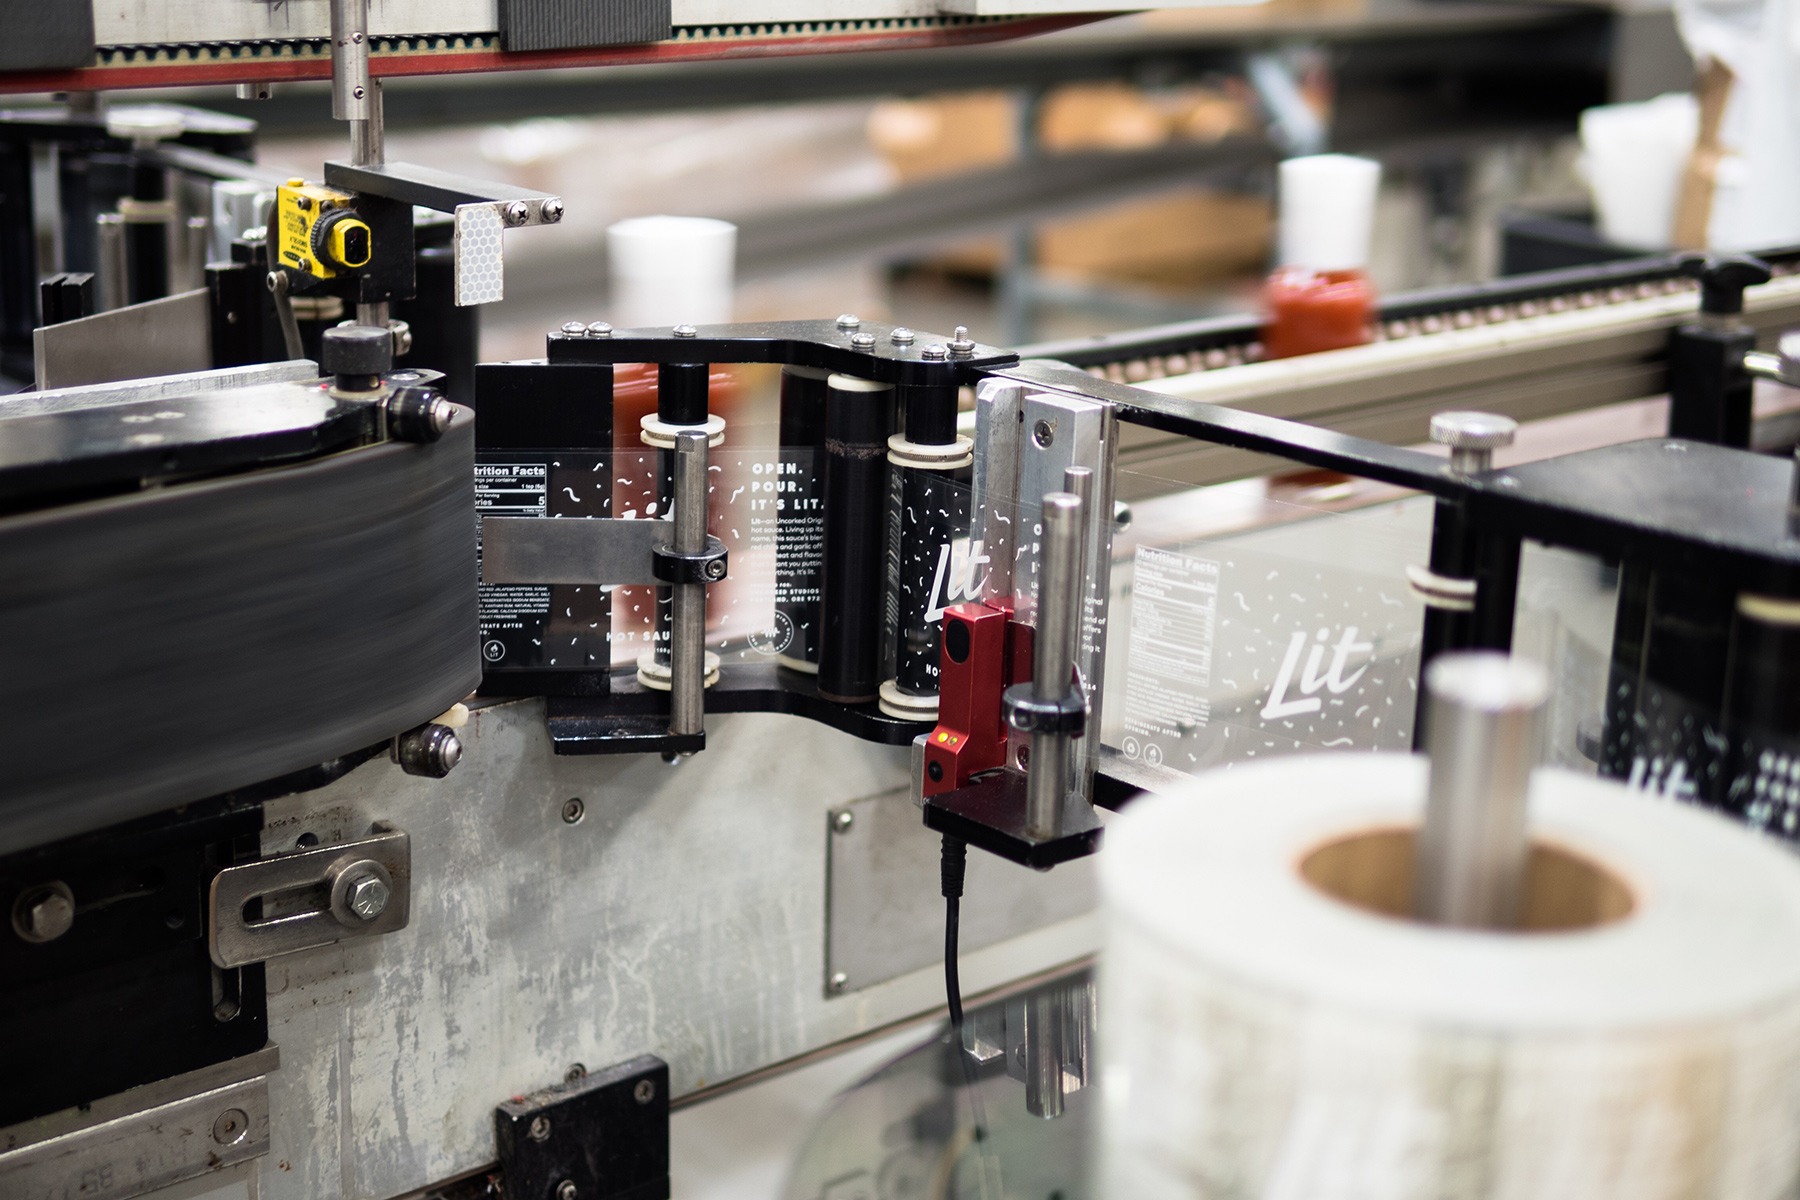 Bottle production for our Lit sauce at Beaverton Foods (Photo Credit: Matthew Noe).